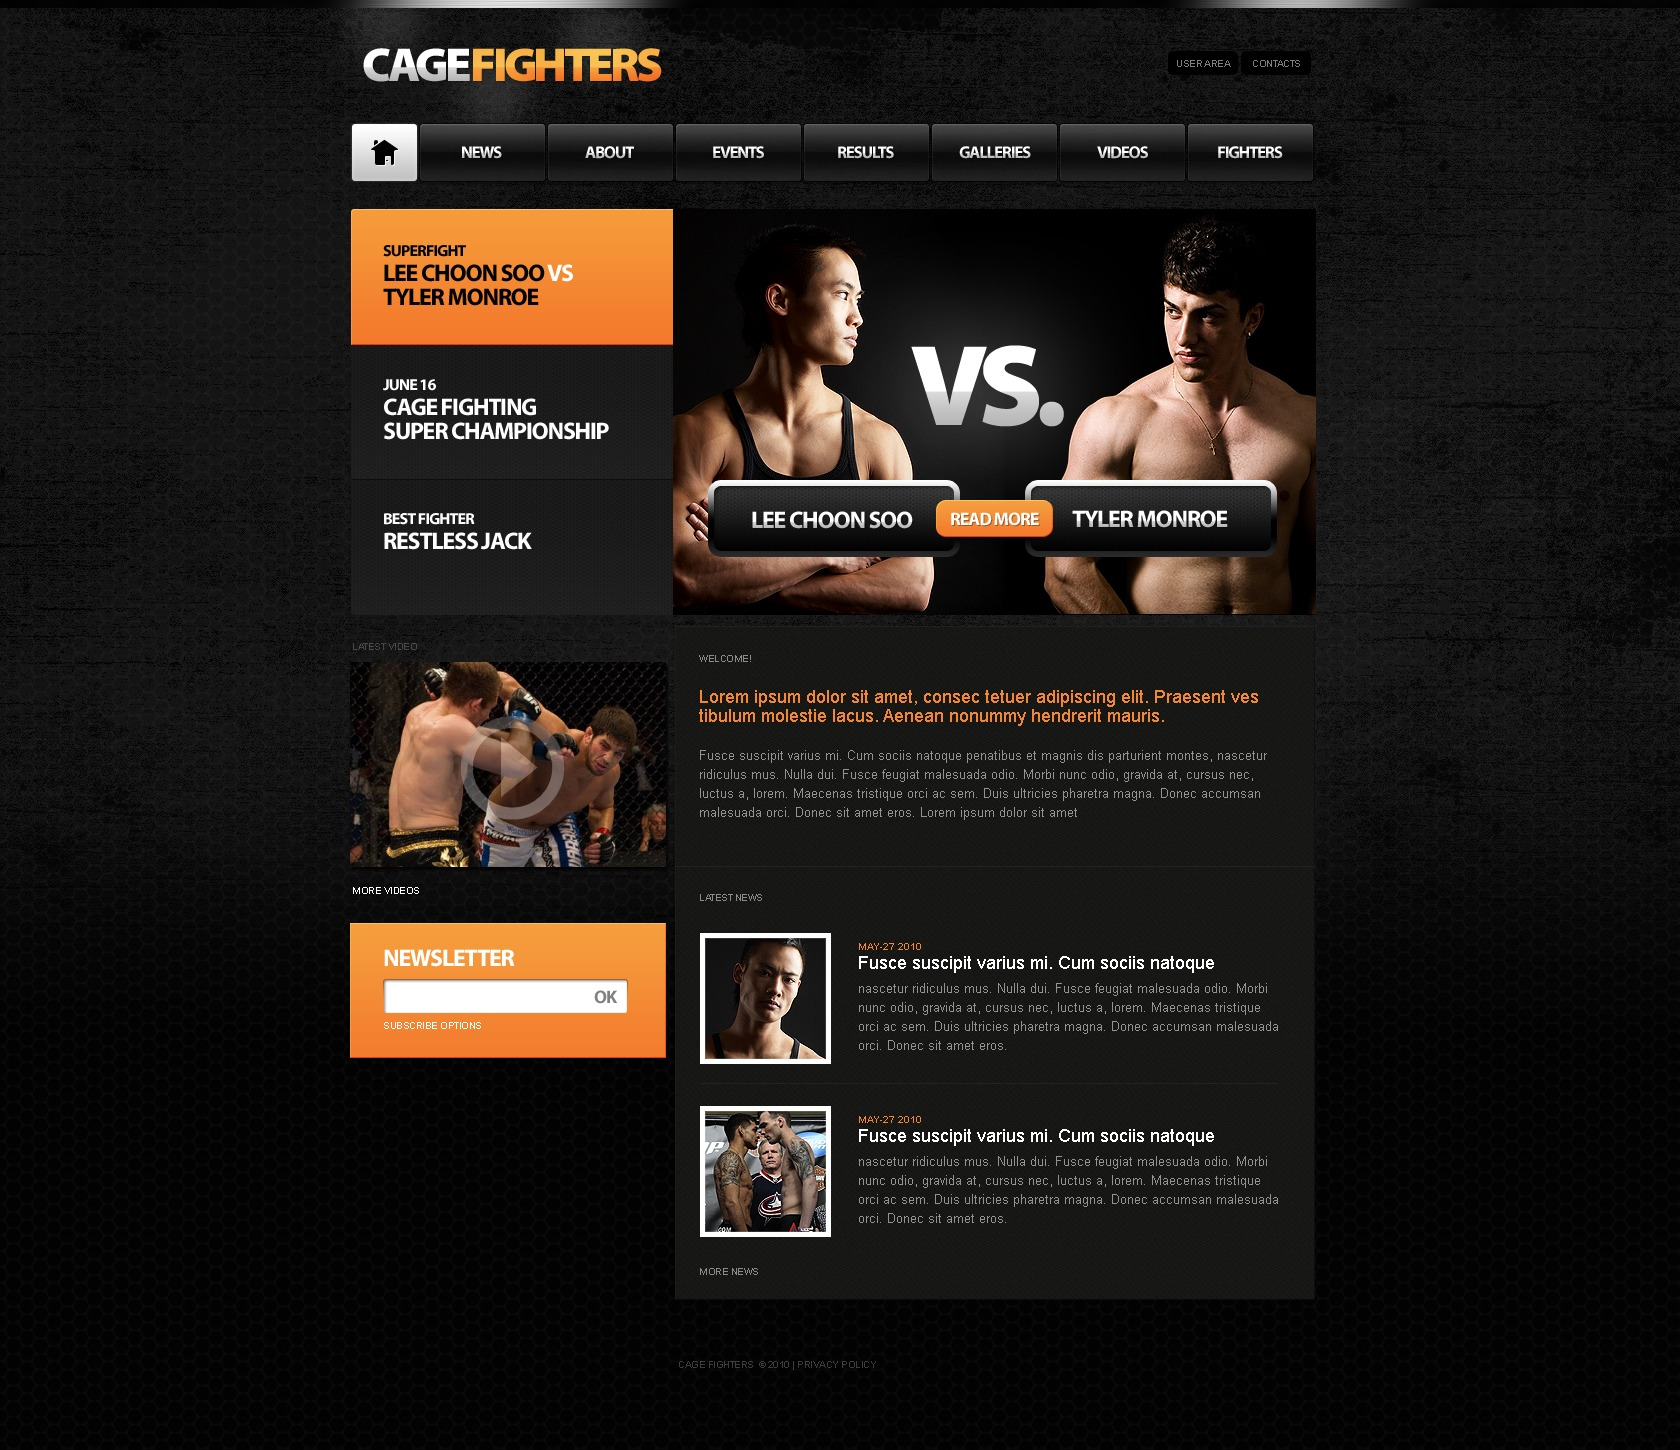 The Cage Fighting PSD Design 54190, one of the best PSD templates of its kind (sport, flash 8, wide), also known as cage fighting PSD template, video PSD template, tickers PSD template, photos PSD template, champions PSD template, championship PSD template, sport and related with cage fighting, video, tickers, photos, champions, championship, sport, etc.